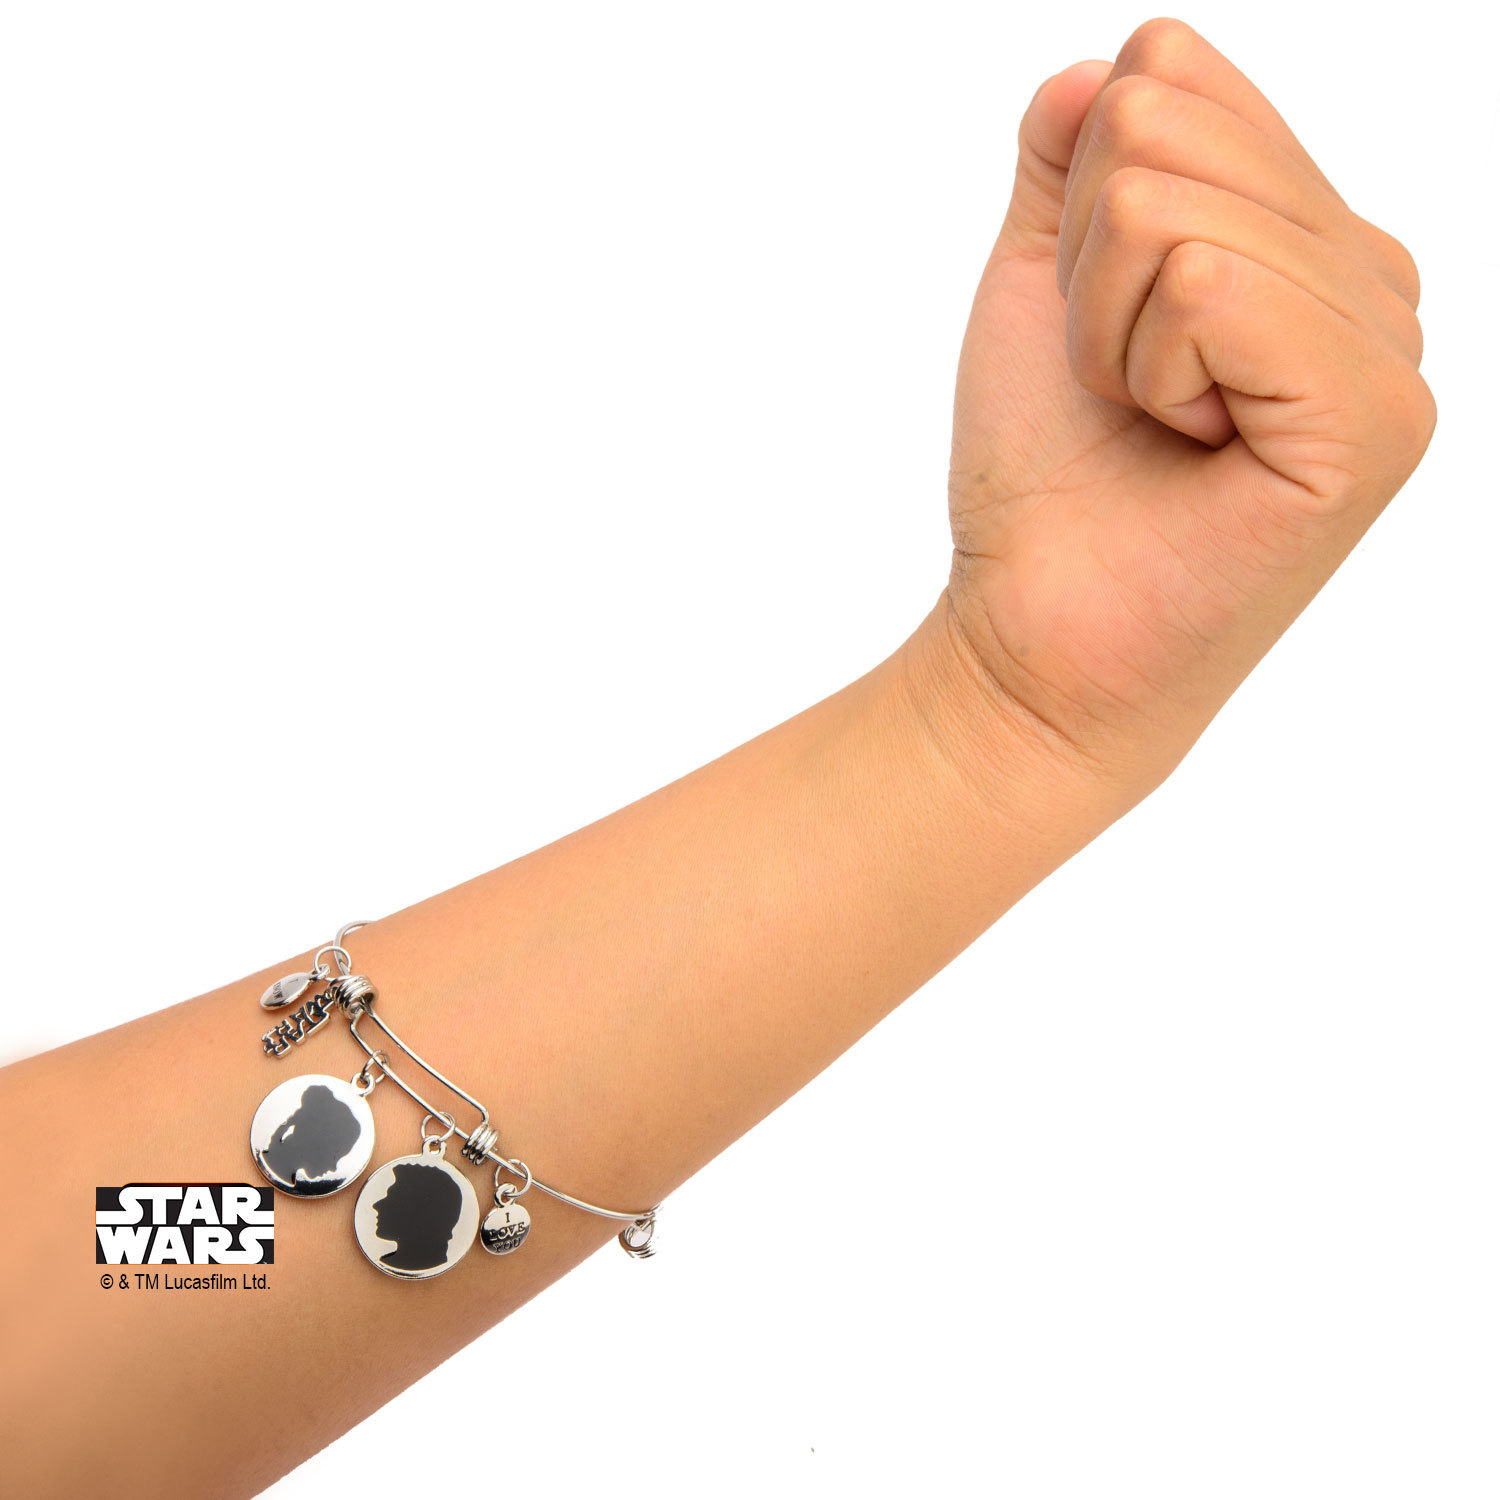 Star Wars Han & Leia Stainless Steel Expandable Bracelet image